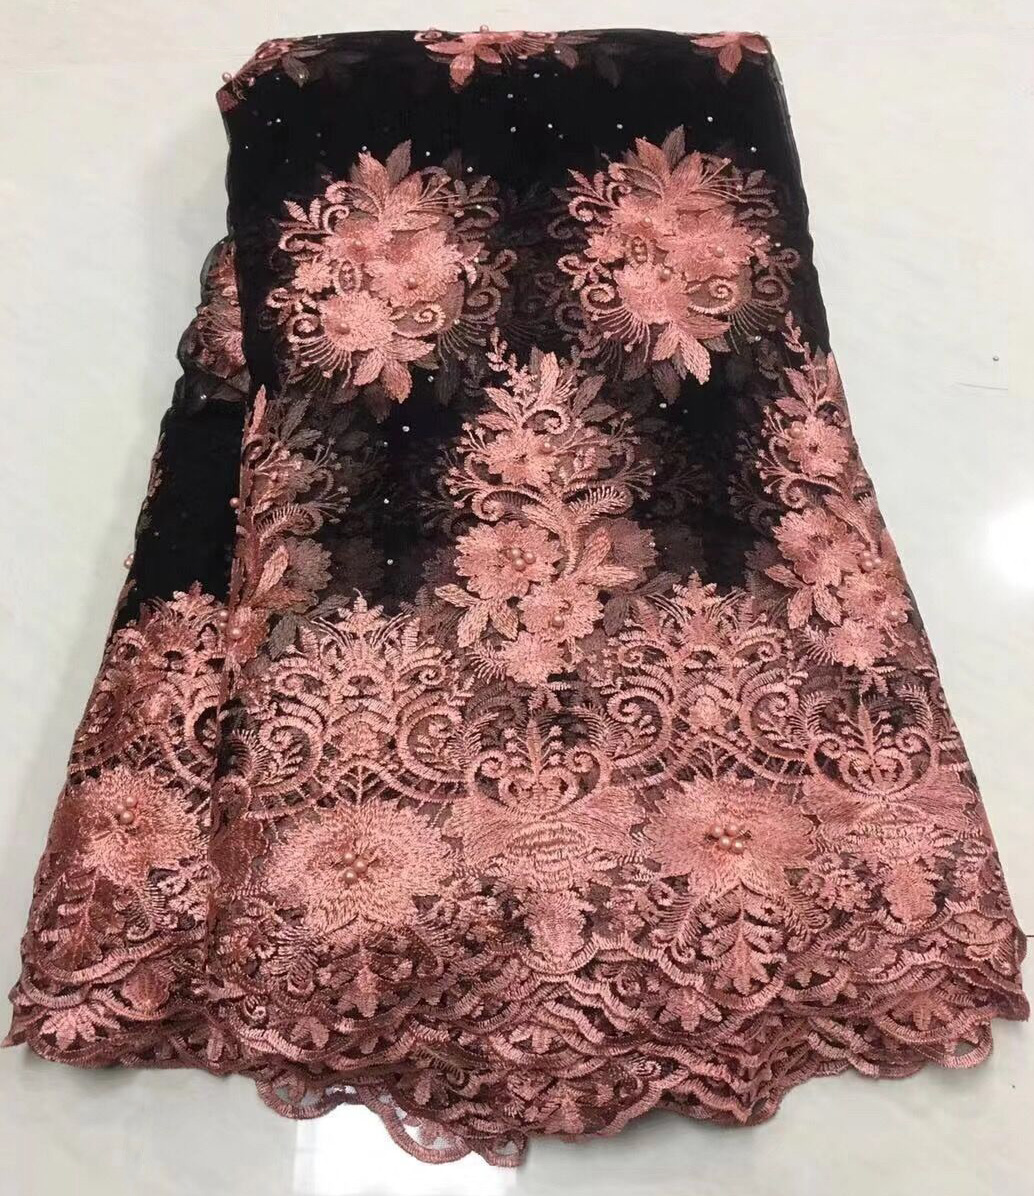 Bright 2018 Hot Sale Nigerian African Lace Fabrics French Guipure Tulle Light Pink Applique Bridal Lace Fabric For Wedding Party Dress Arts,crafts & Sewing